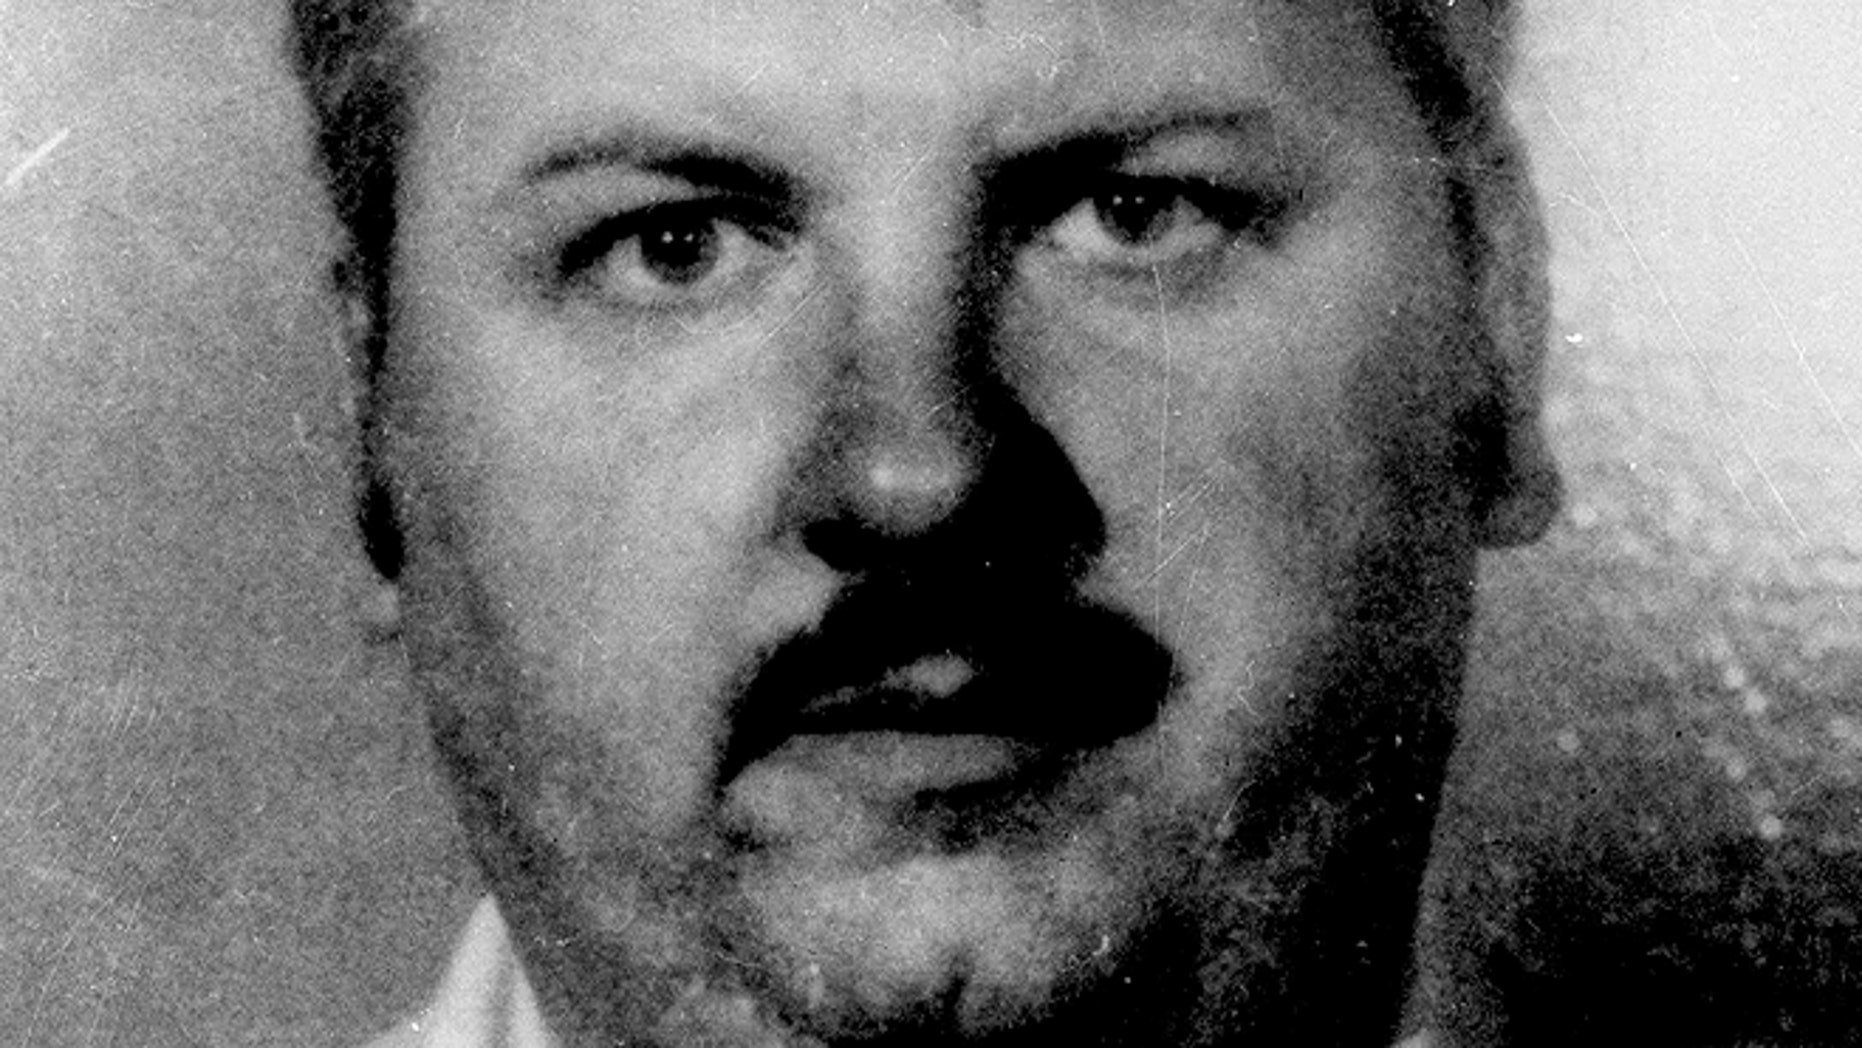 This 1978 file photo shows serial killer John Wayne Gacy.